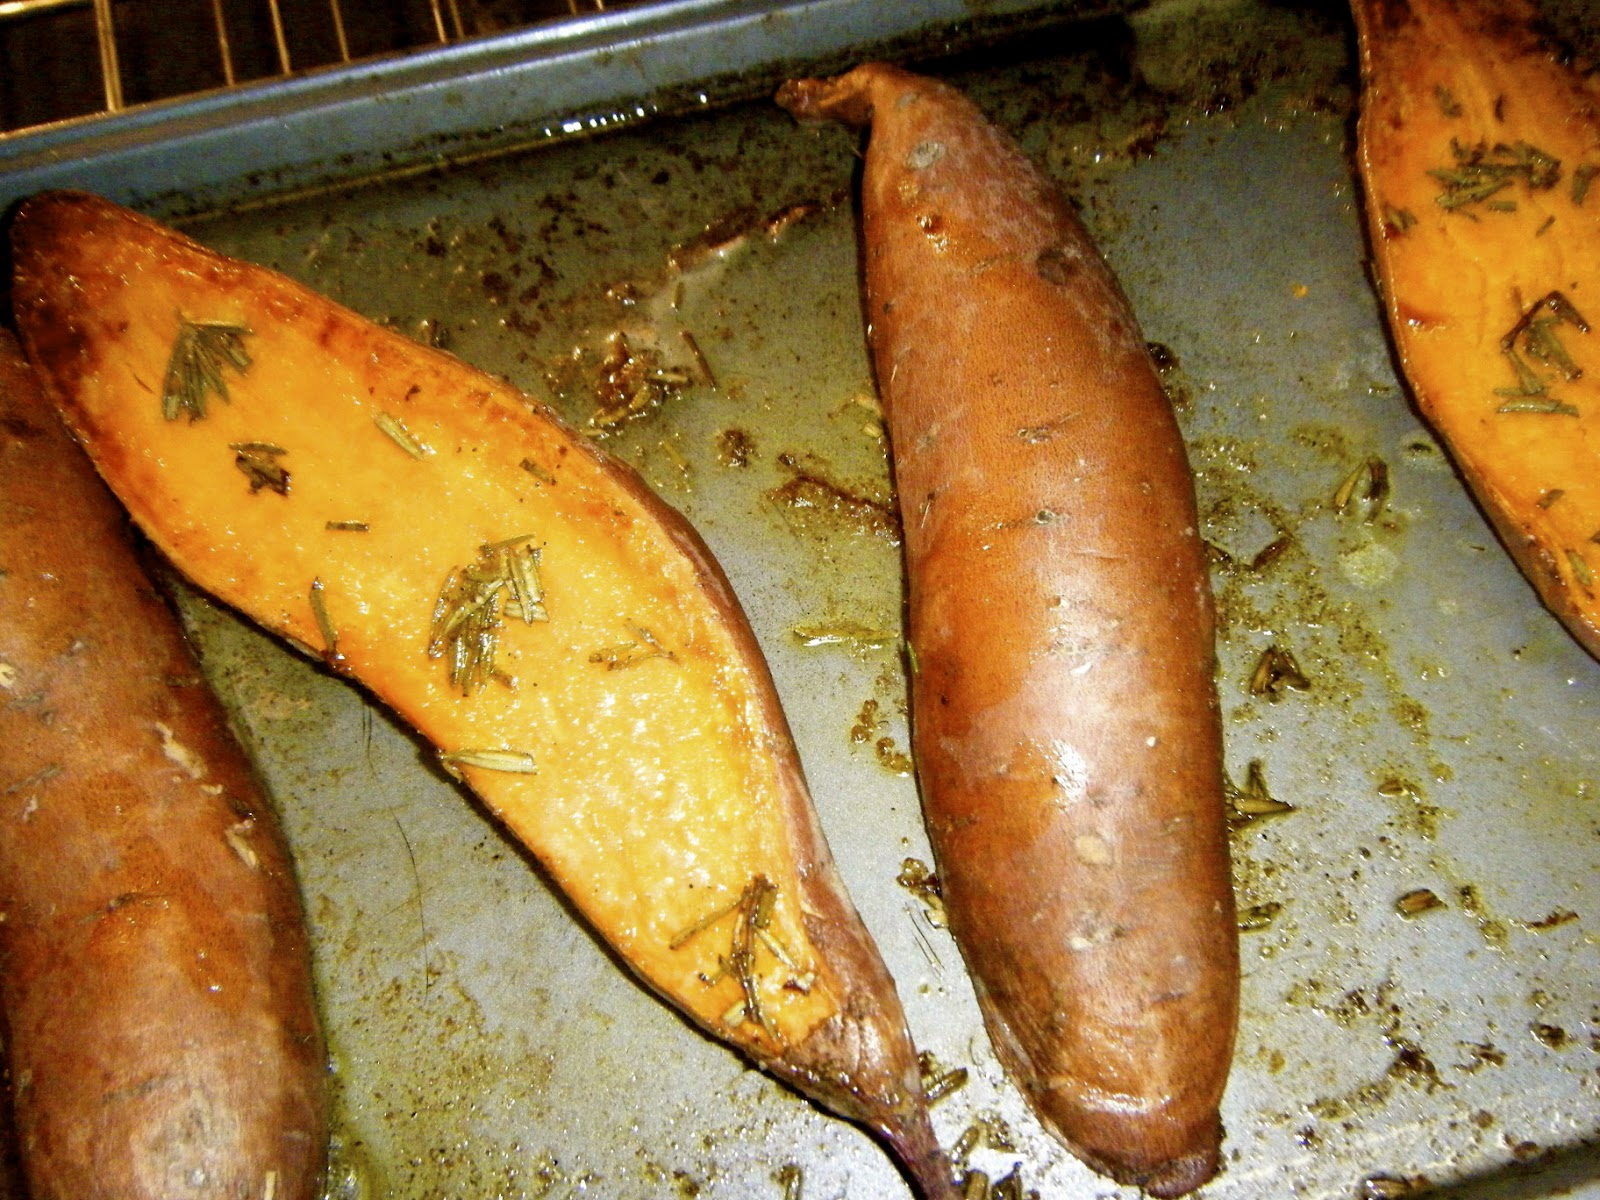 Katie-Kates KitchenBaked Rosemary Sweet Potato Halves